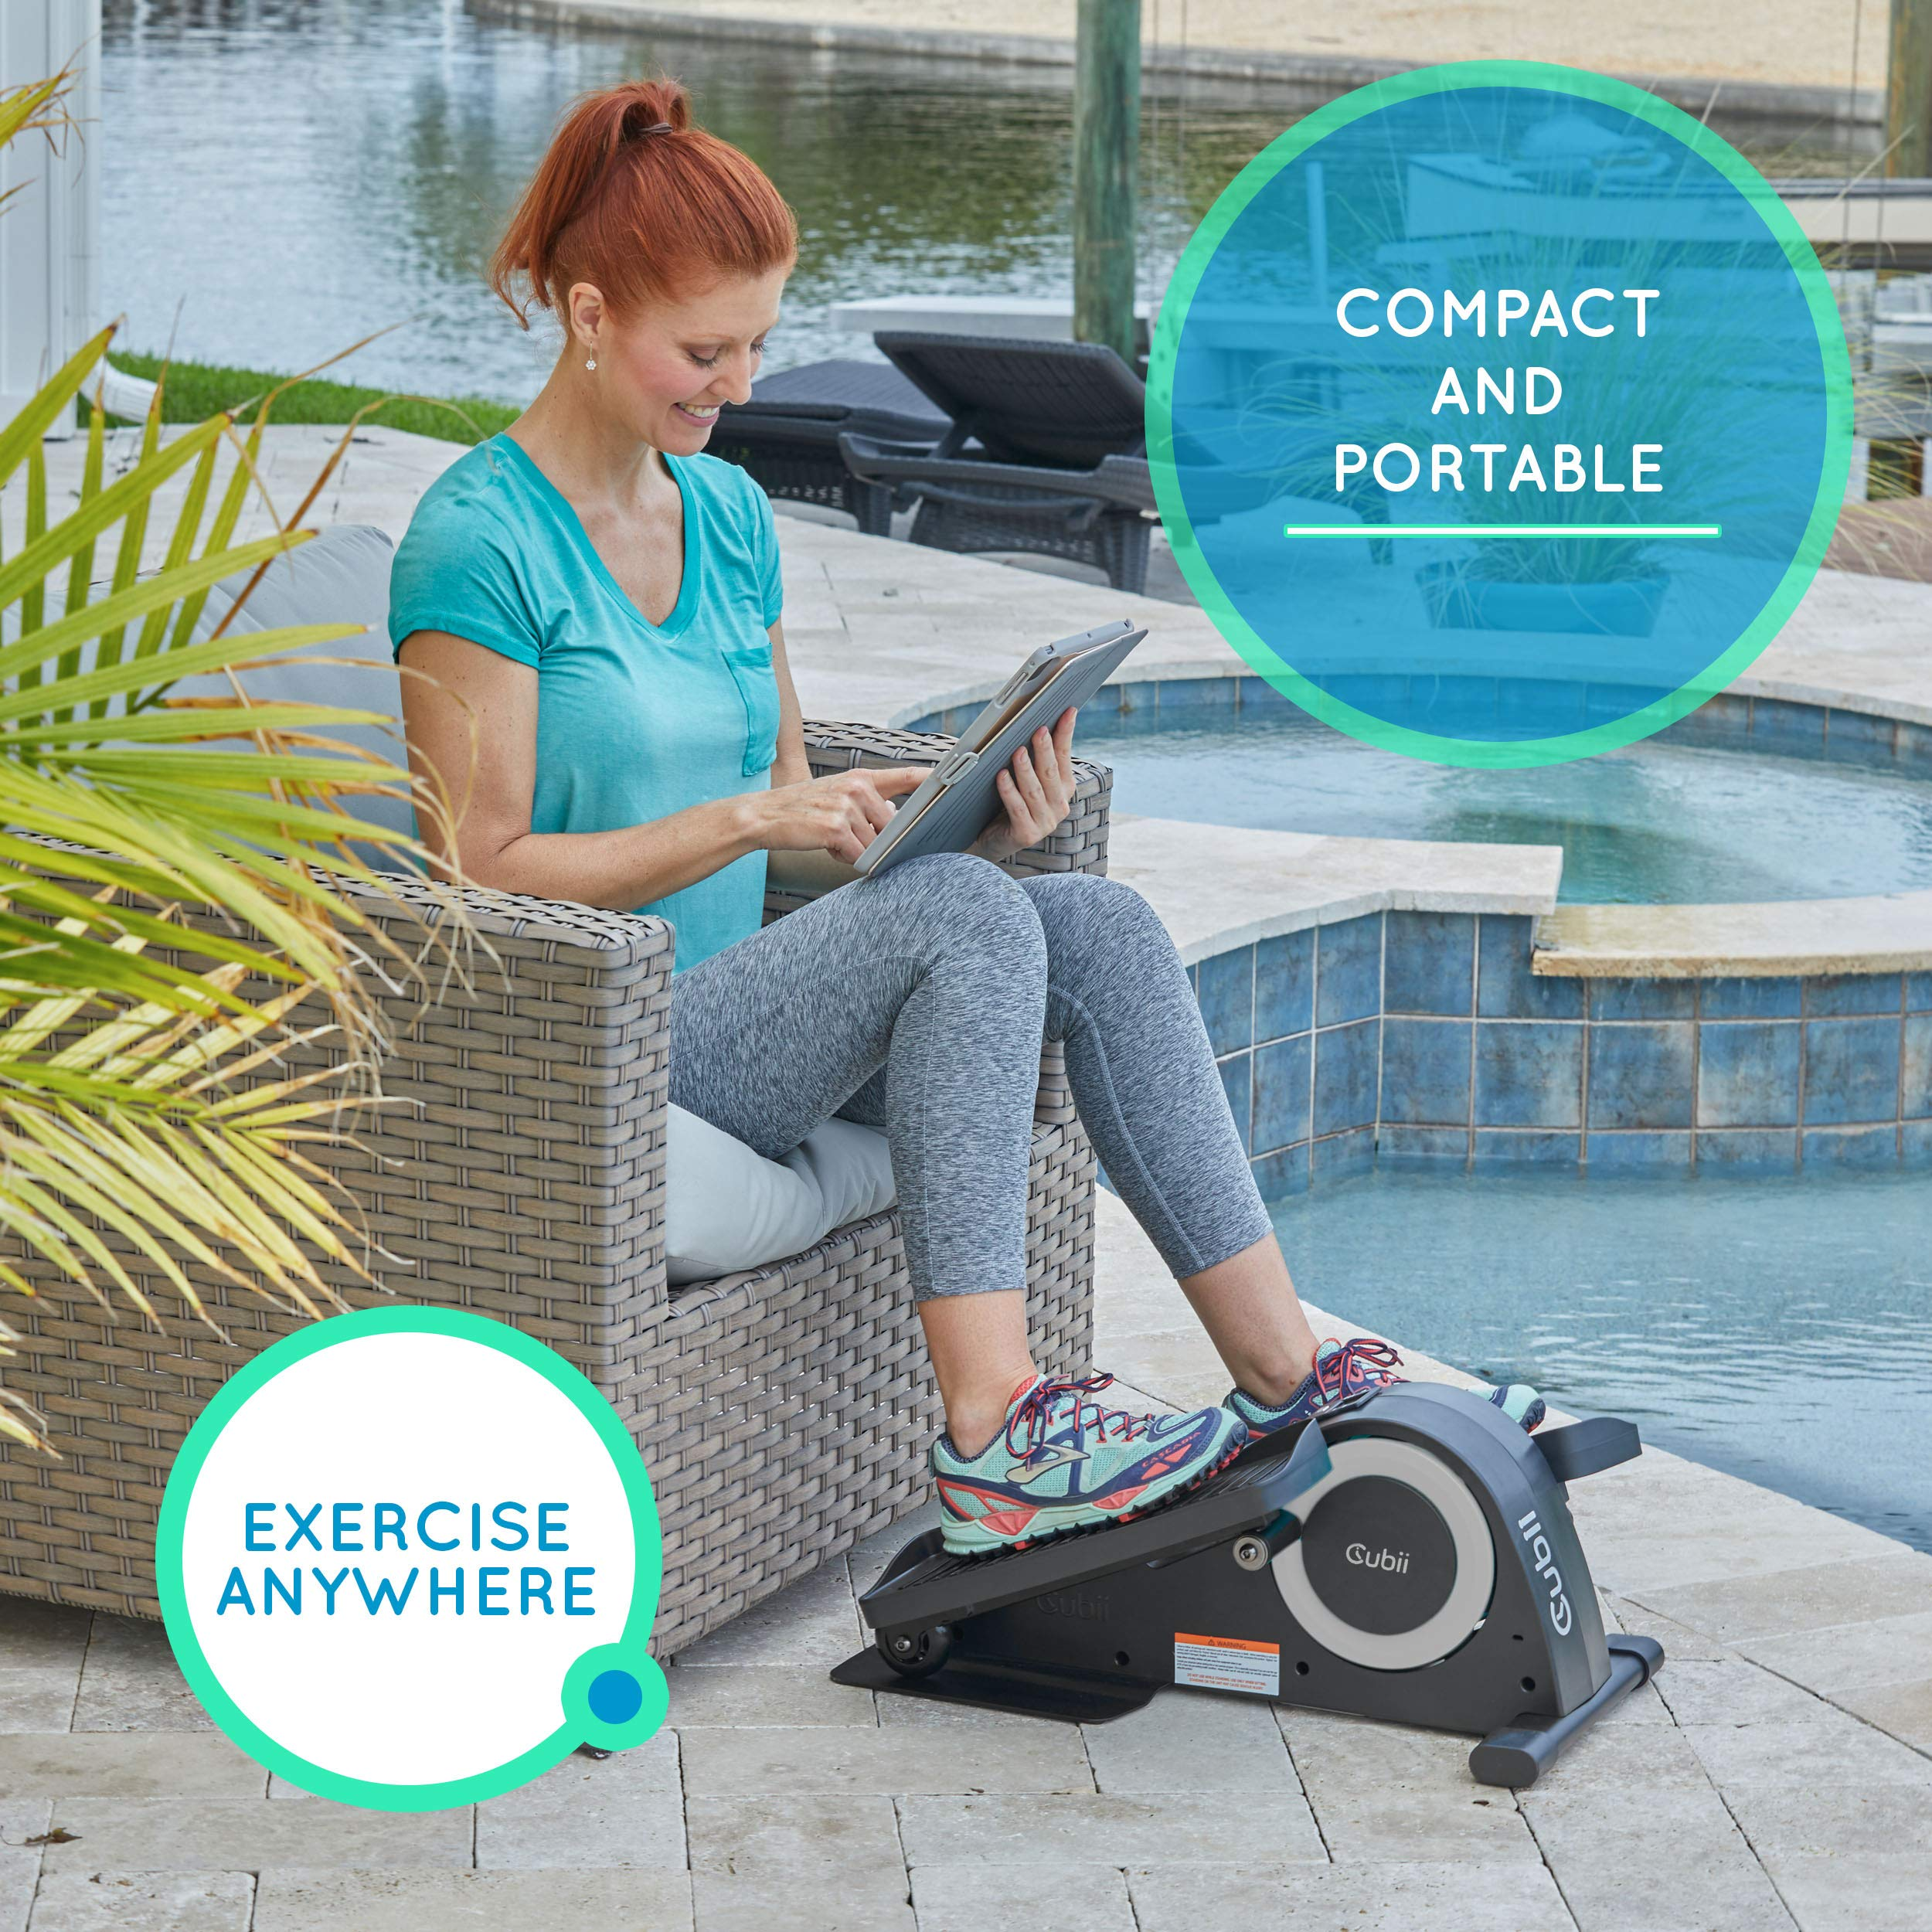 Cubii Jr: Desk Elliptical w/Built in Display Monitor, Easy Assembly, Quiet & Compact, Adjustable Resistance (Silver) by Cubii (Image #7)